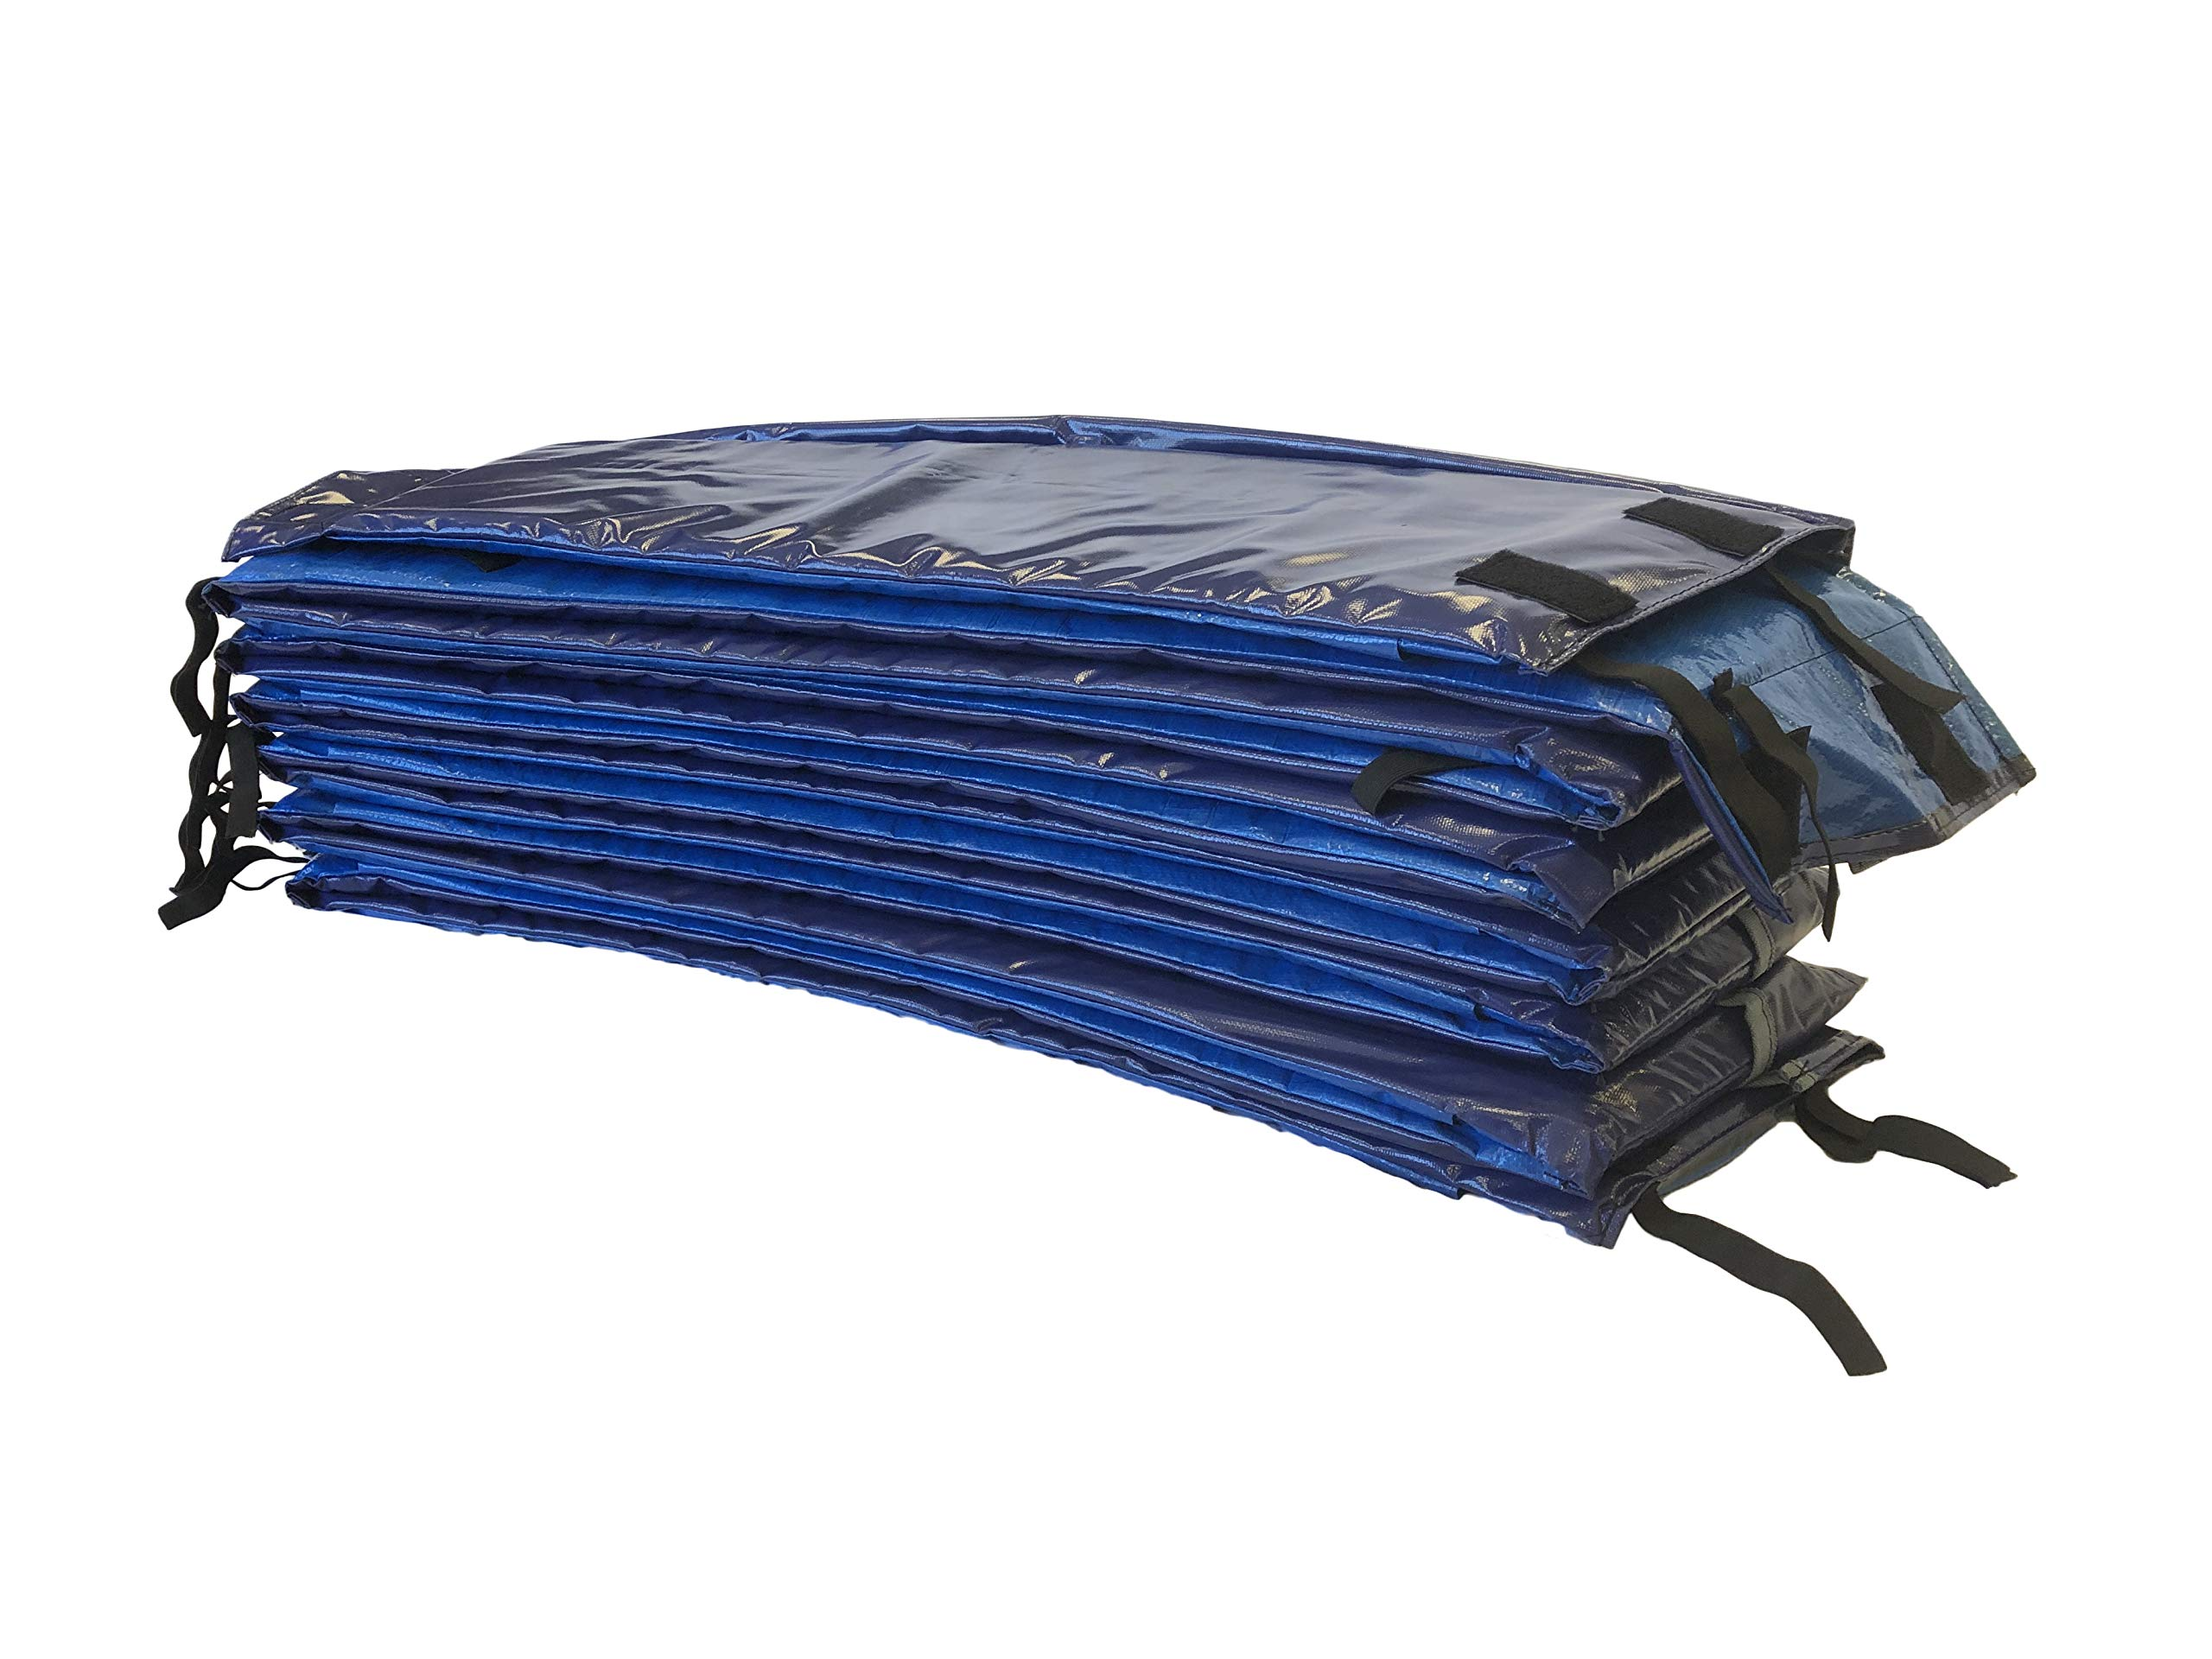 Trampoline Pro Trampoline Pads | Round 12ft & 14ft & 15ft | Square 13ft x 13ft & 14ft x 14ft | Blue and Green (Premium Royal Blue, 14 ft & 15 ft Premium)